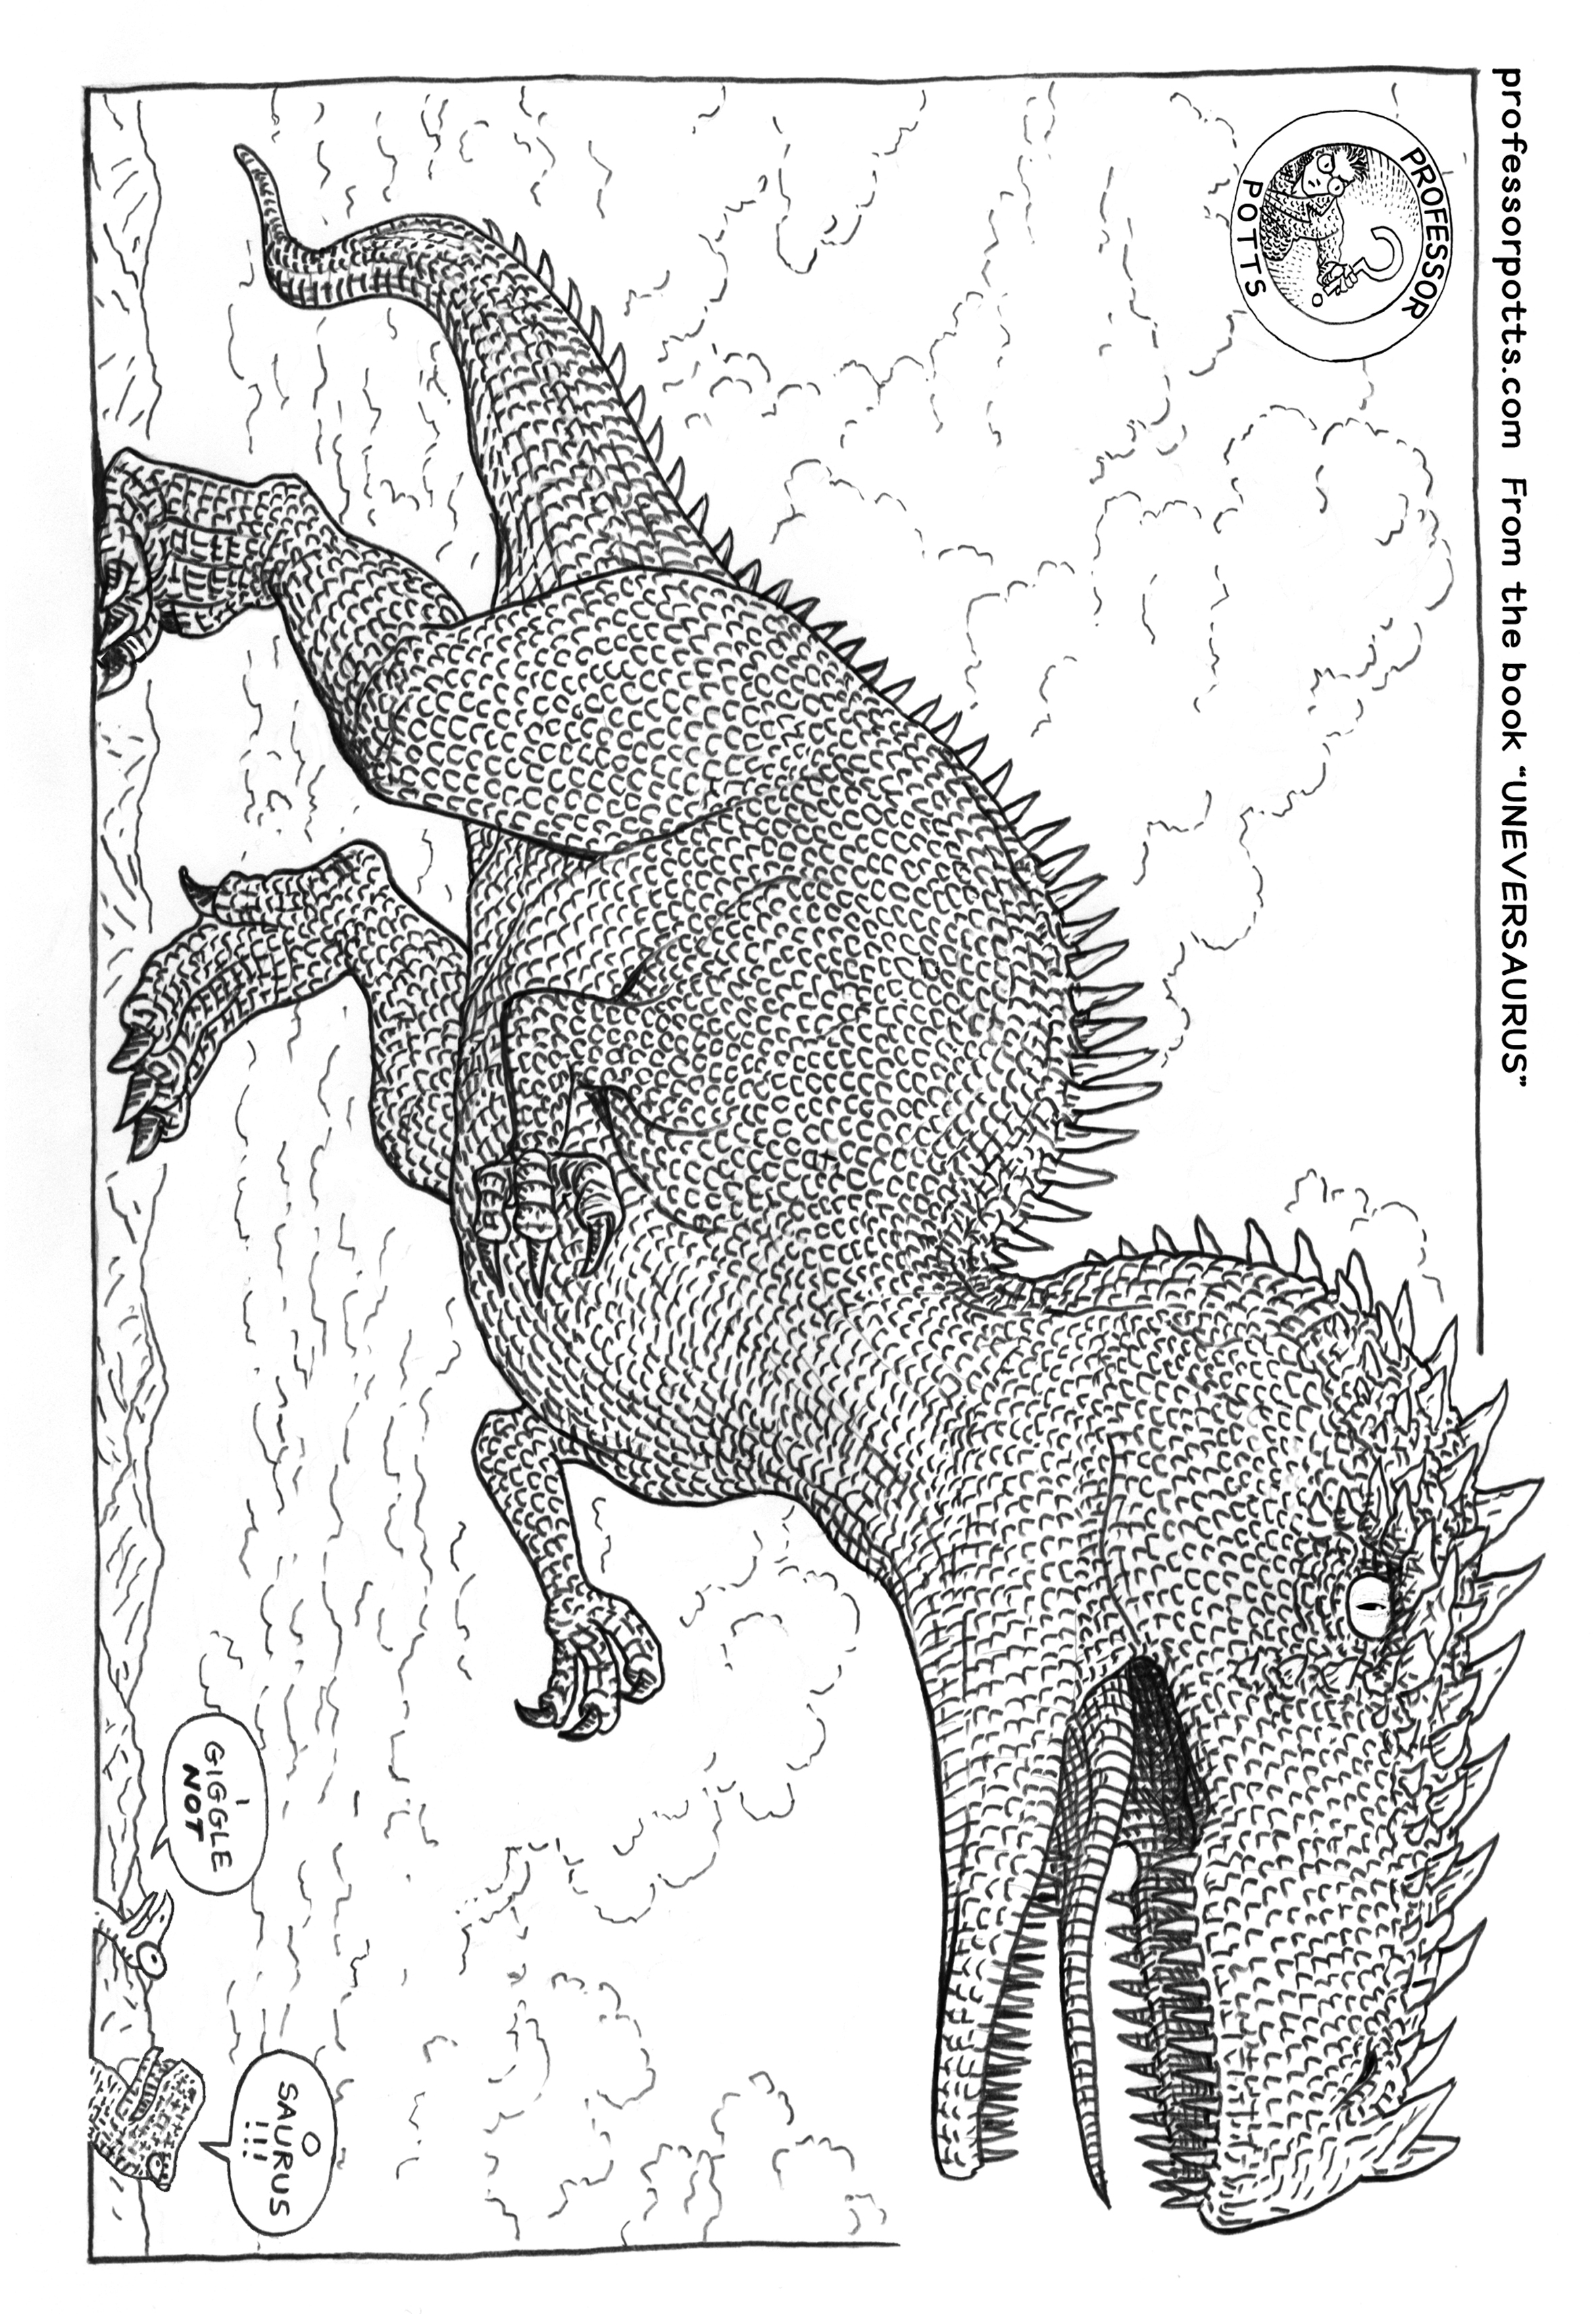 Giganotosaurus coloring pages coloring pages - Giganotosaurus Coloring Pages Giganotosaurus